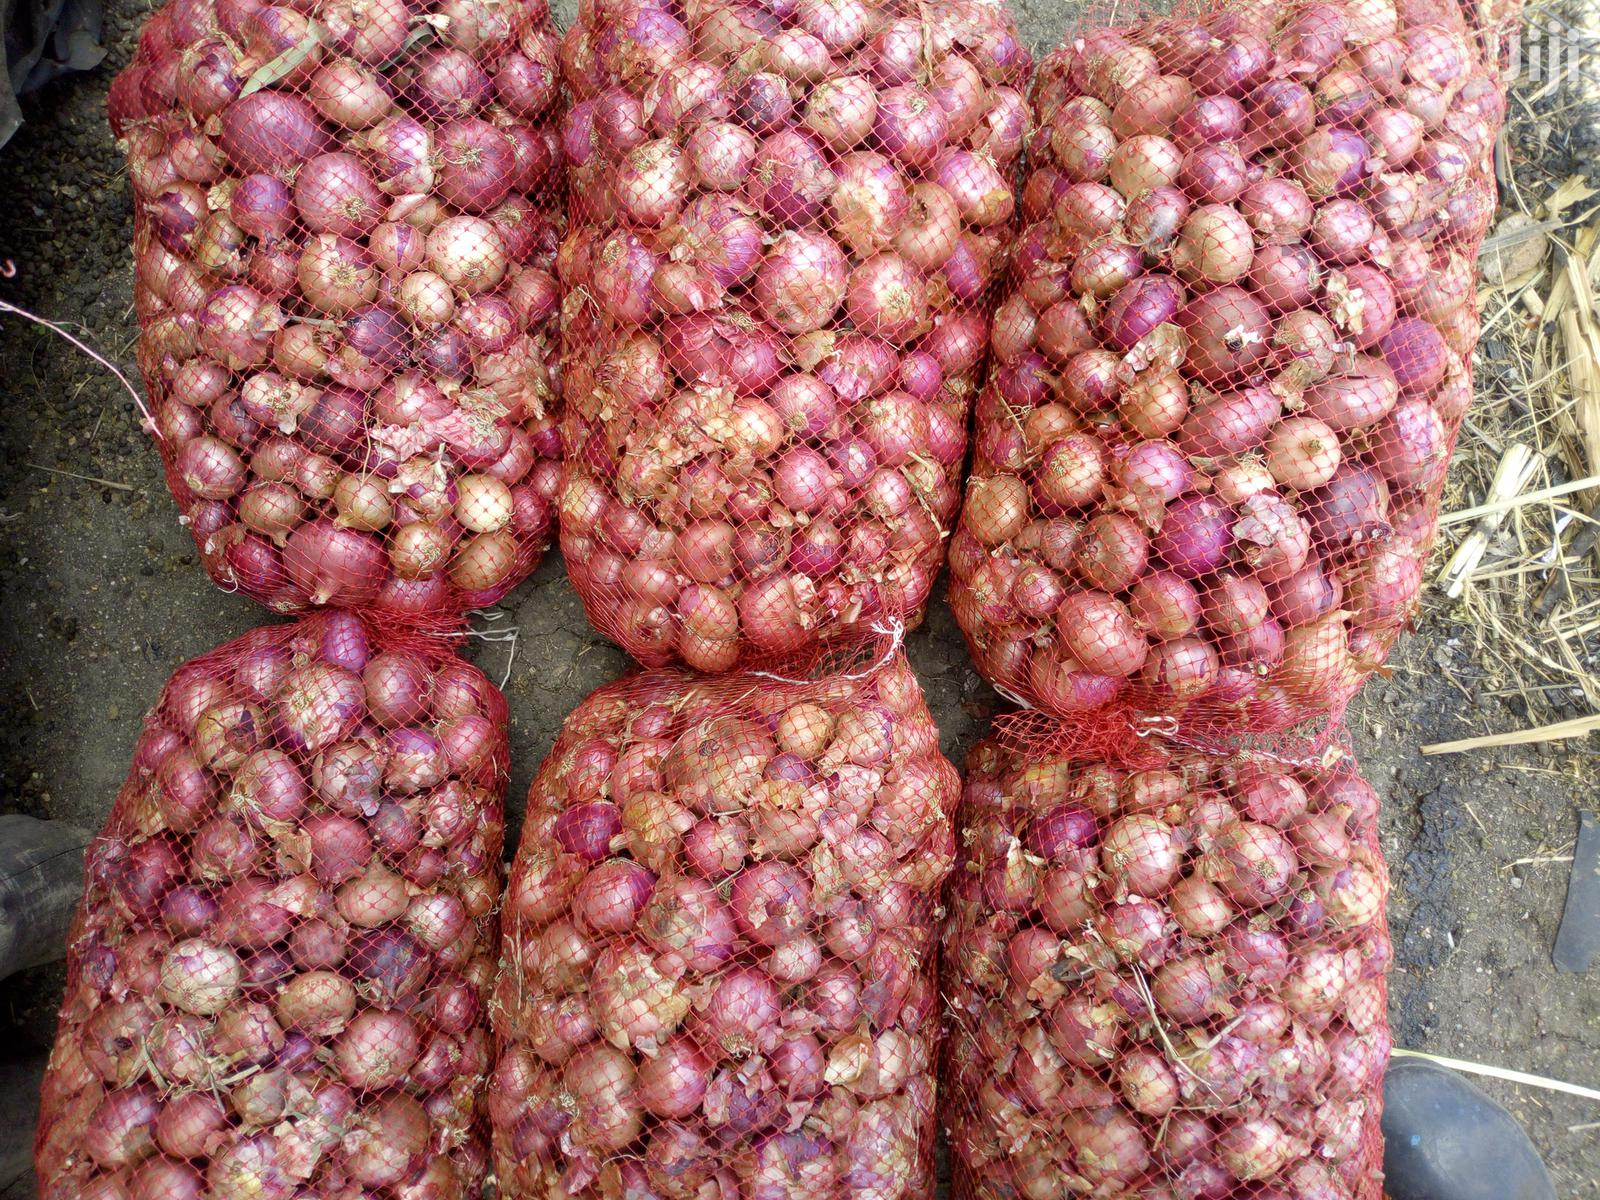 Archive: Onions for Sale